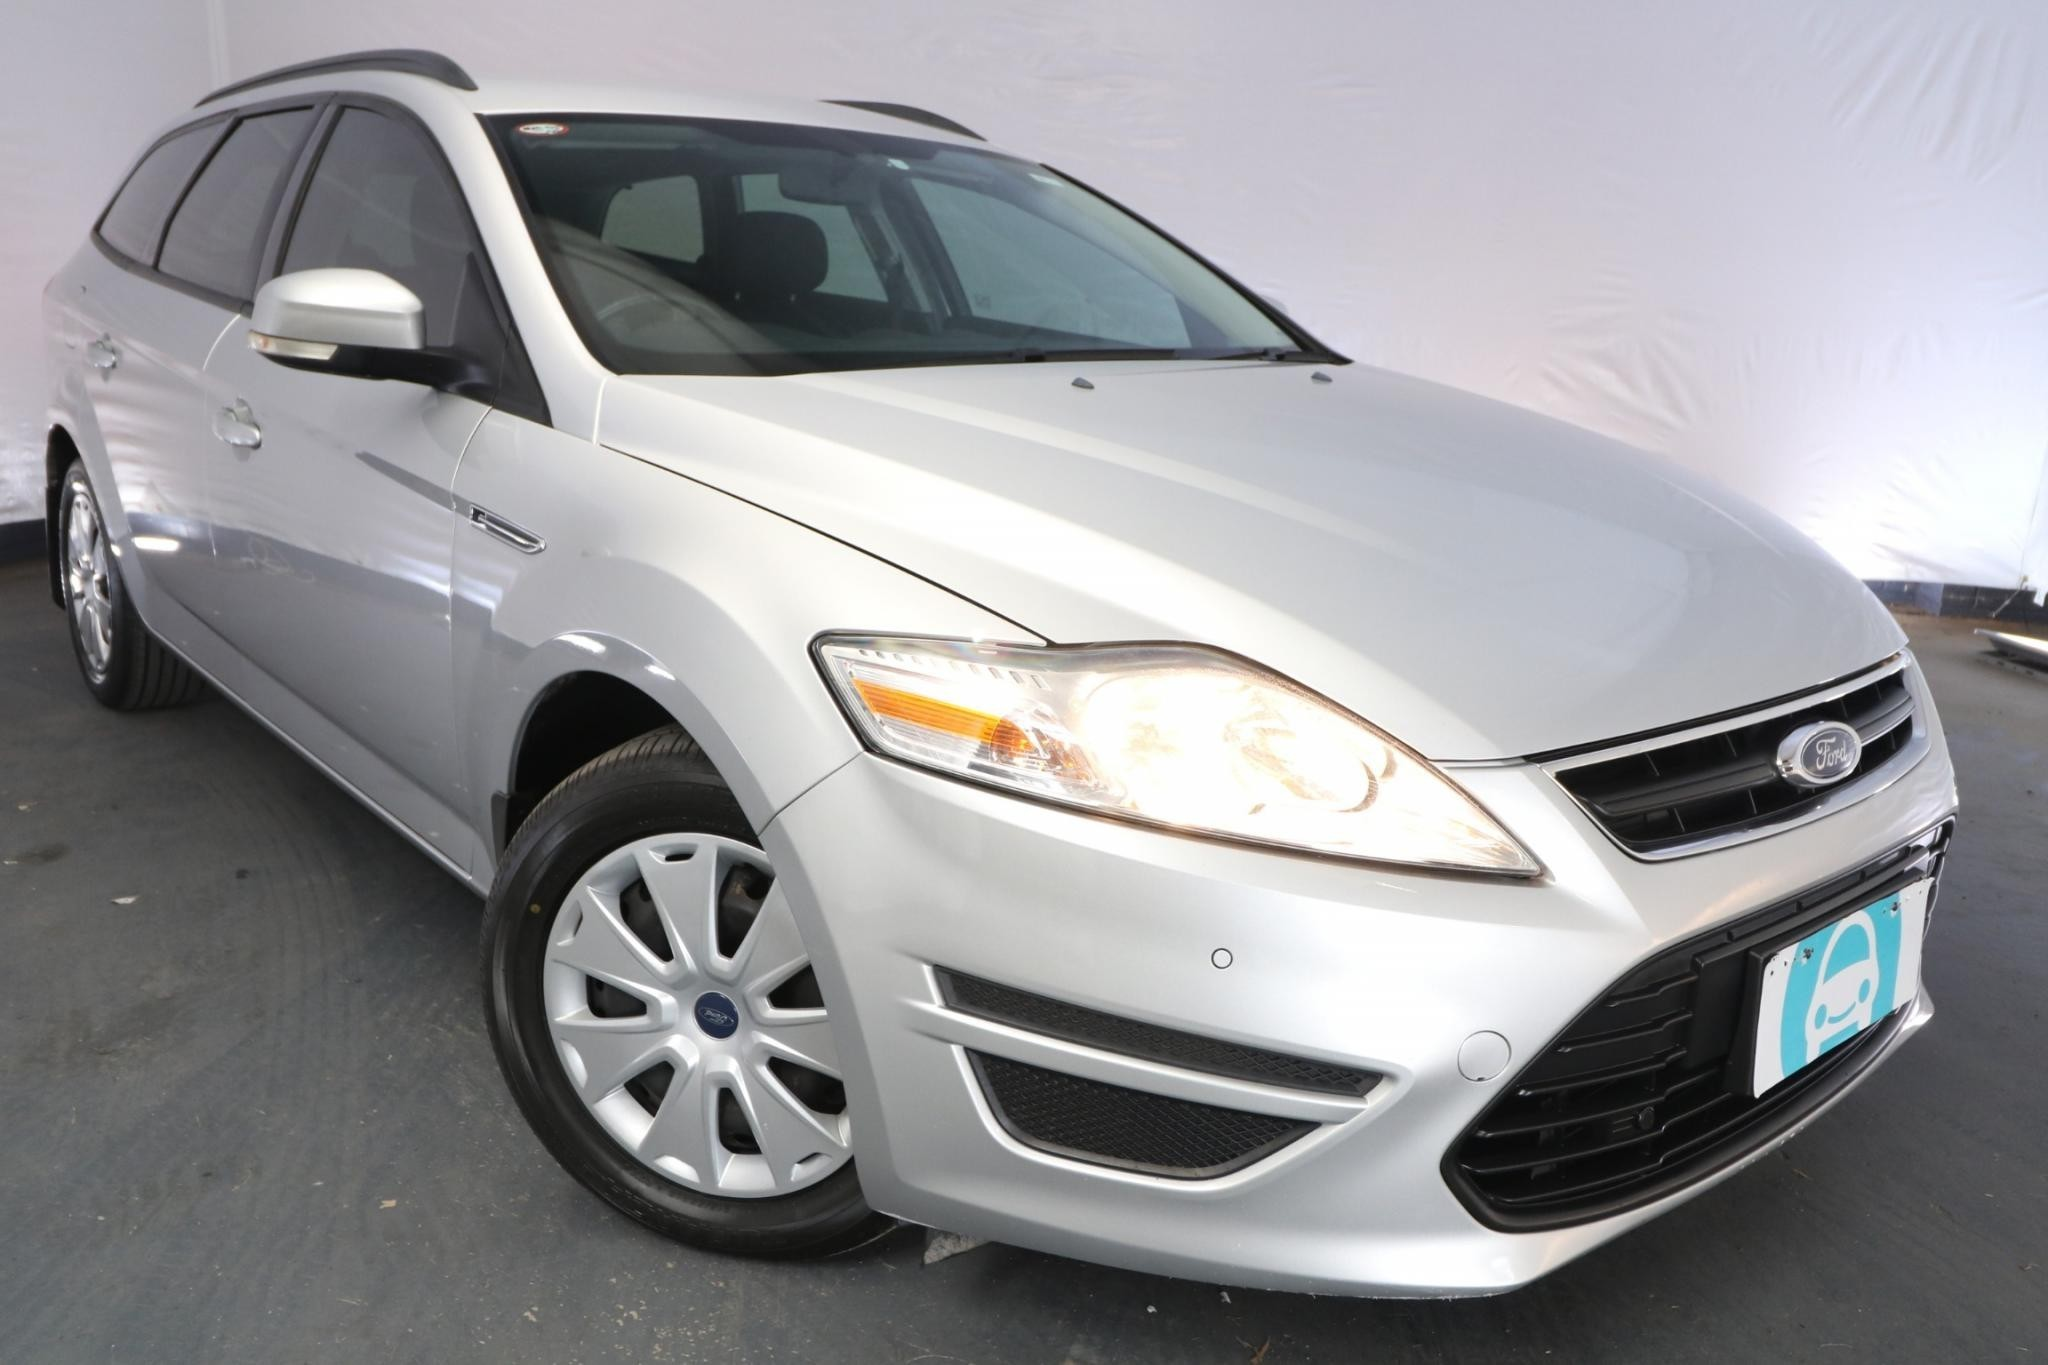 2014 Ford Mondeo LX TDCi MC / 6 Speed Auto Direct Shift / Wagon / 2.0L / 4 Cylinder TURBO / Diesel / 4x2 / 4 door / November release LEA14A